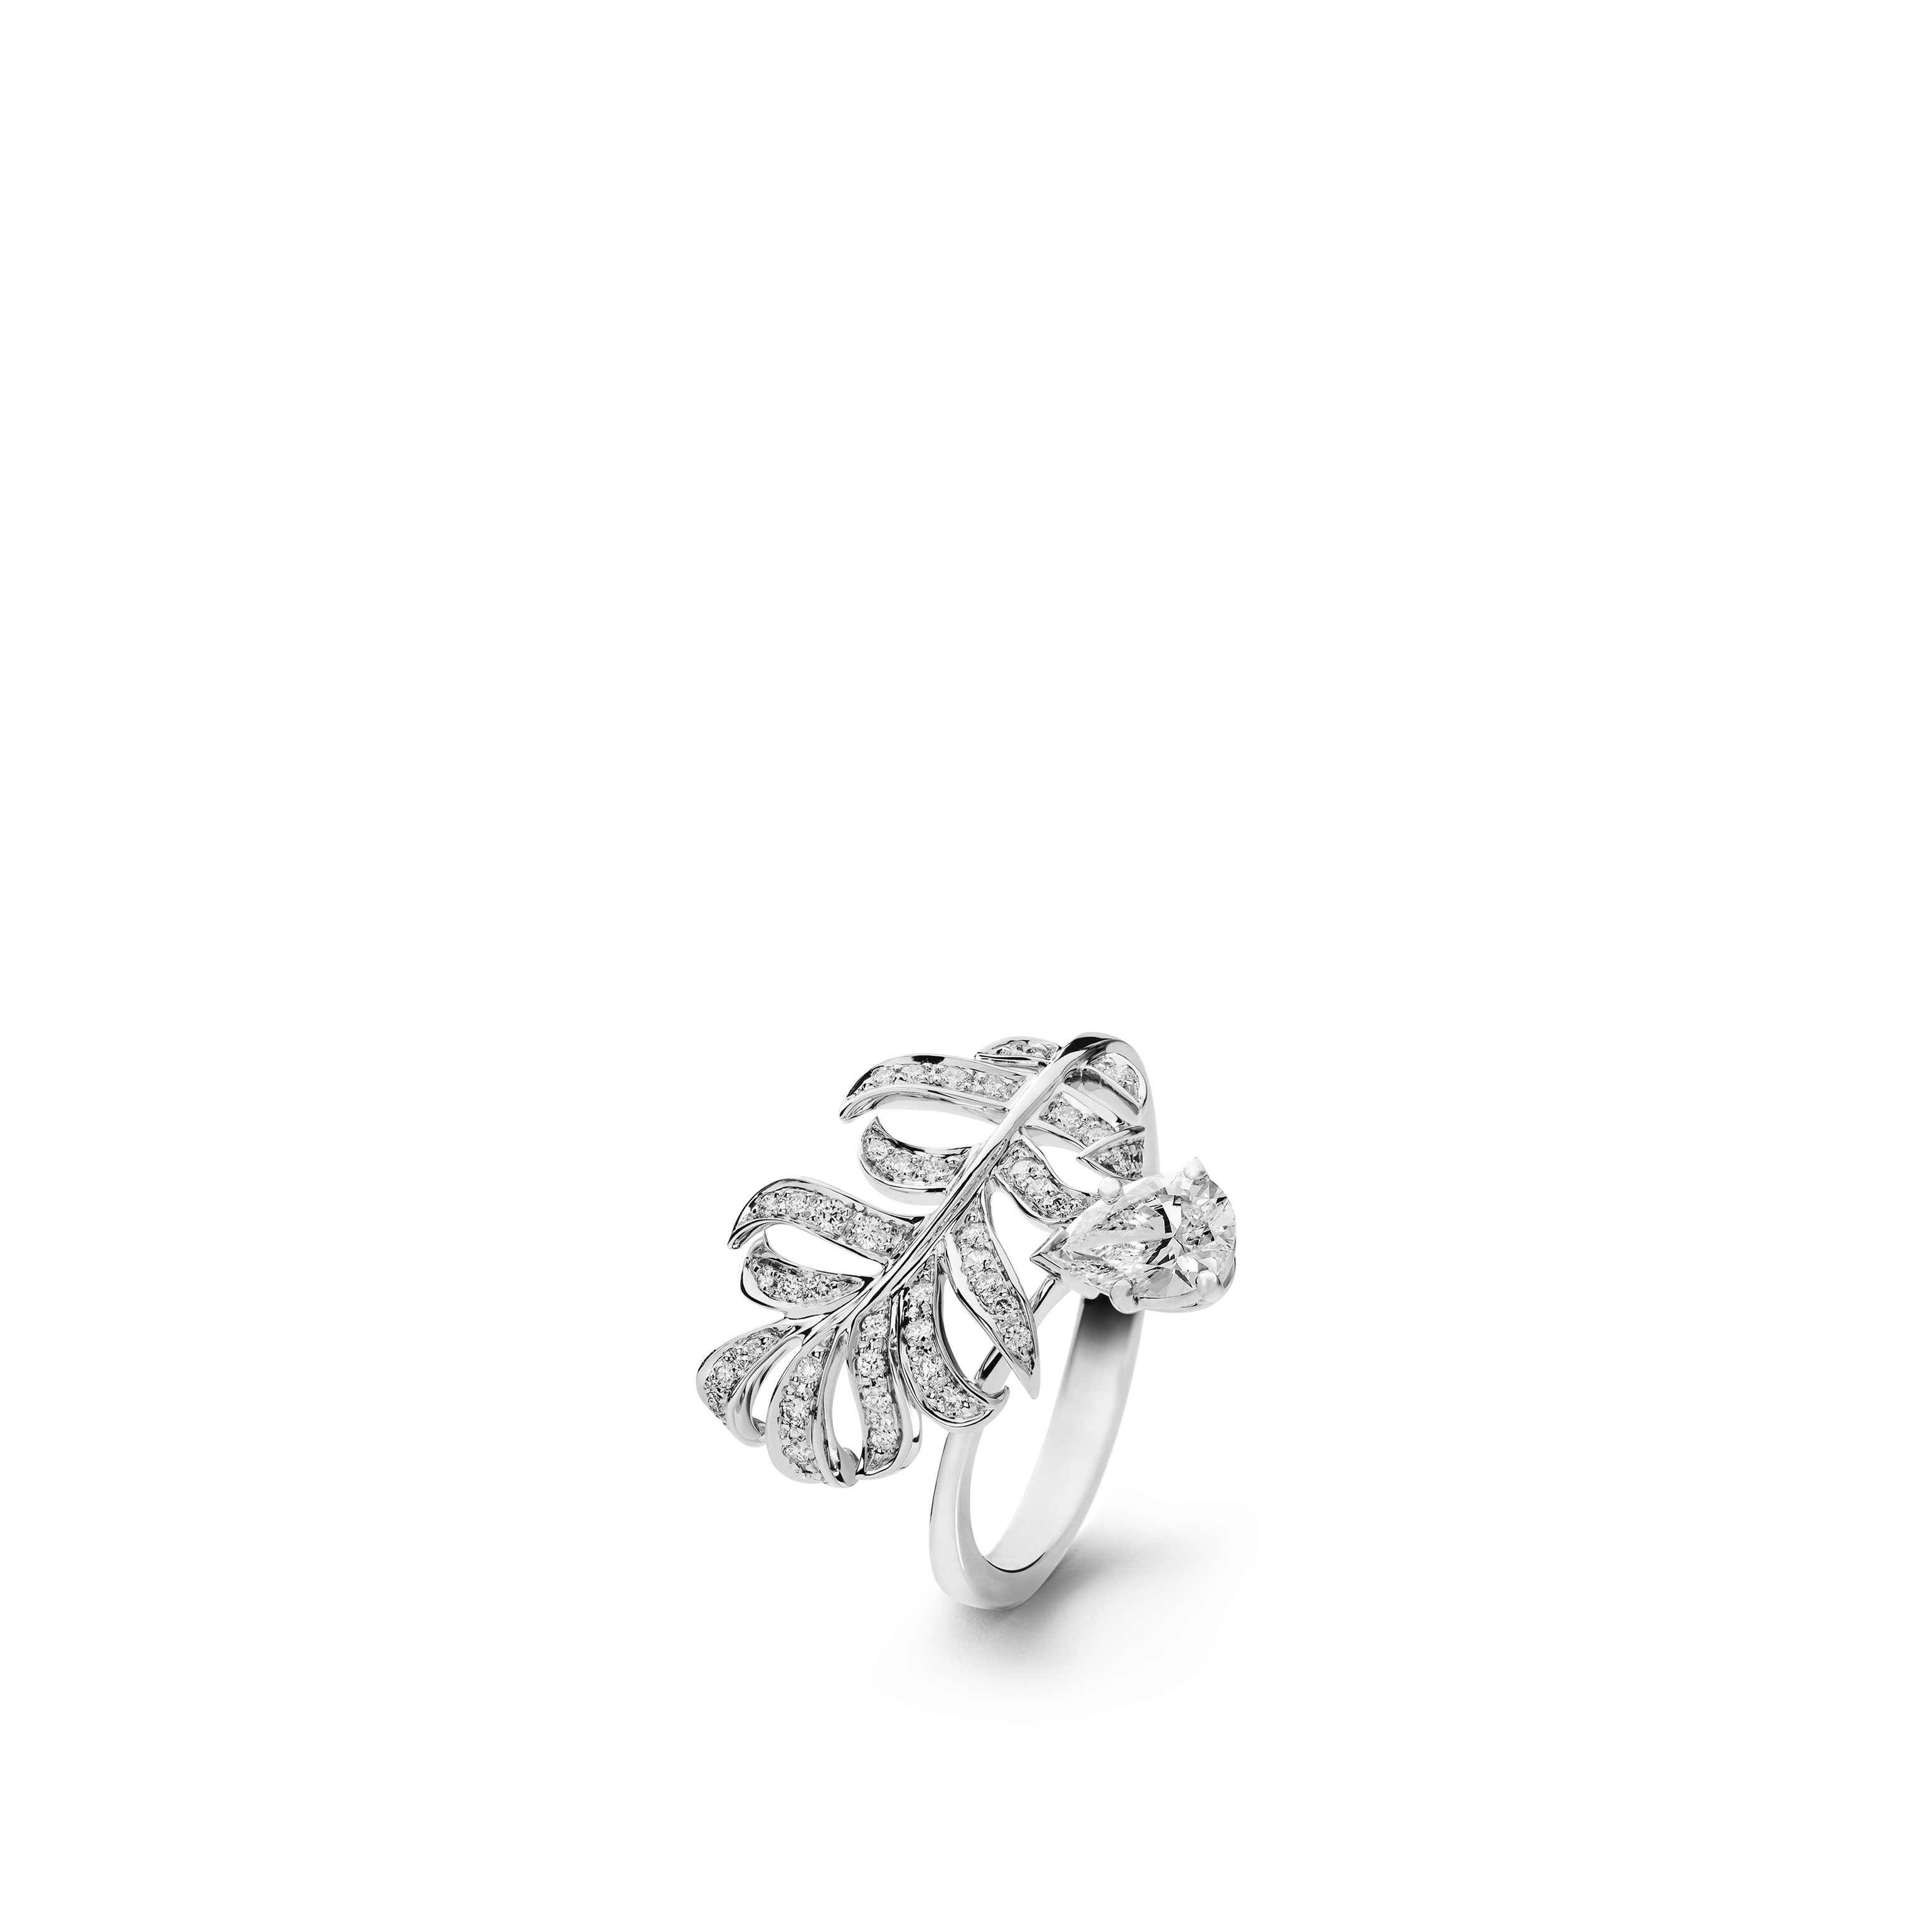 Plume de CHANEL ring - 18K white gold, diamonds - CHANEL - Default view - see standard sized version